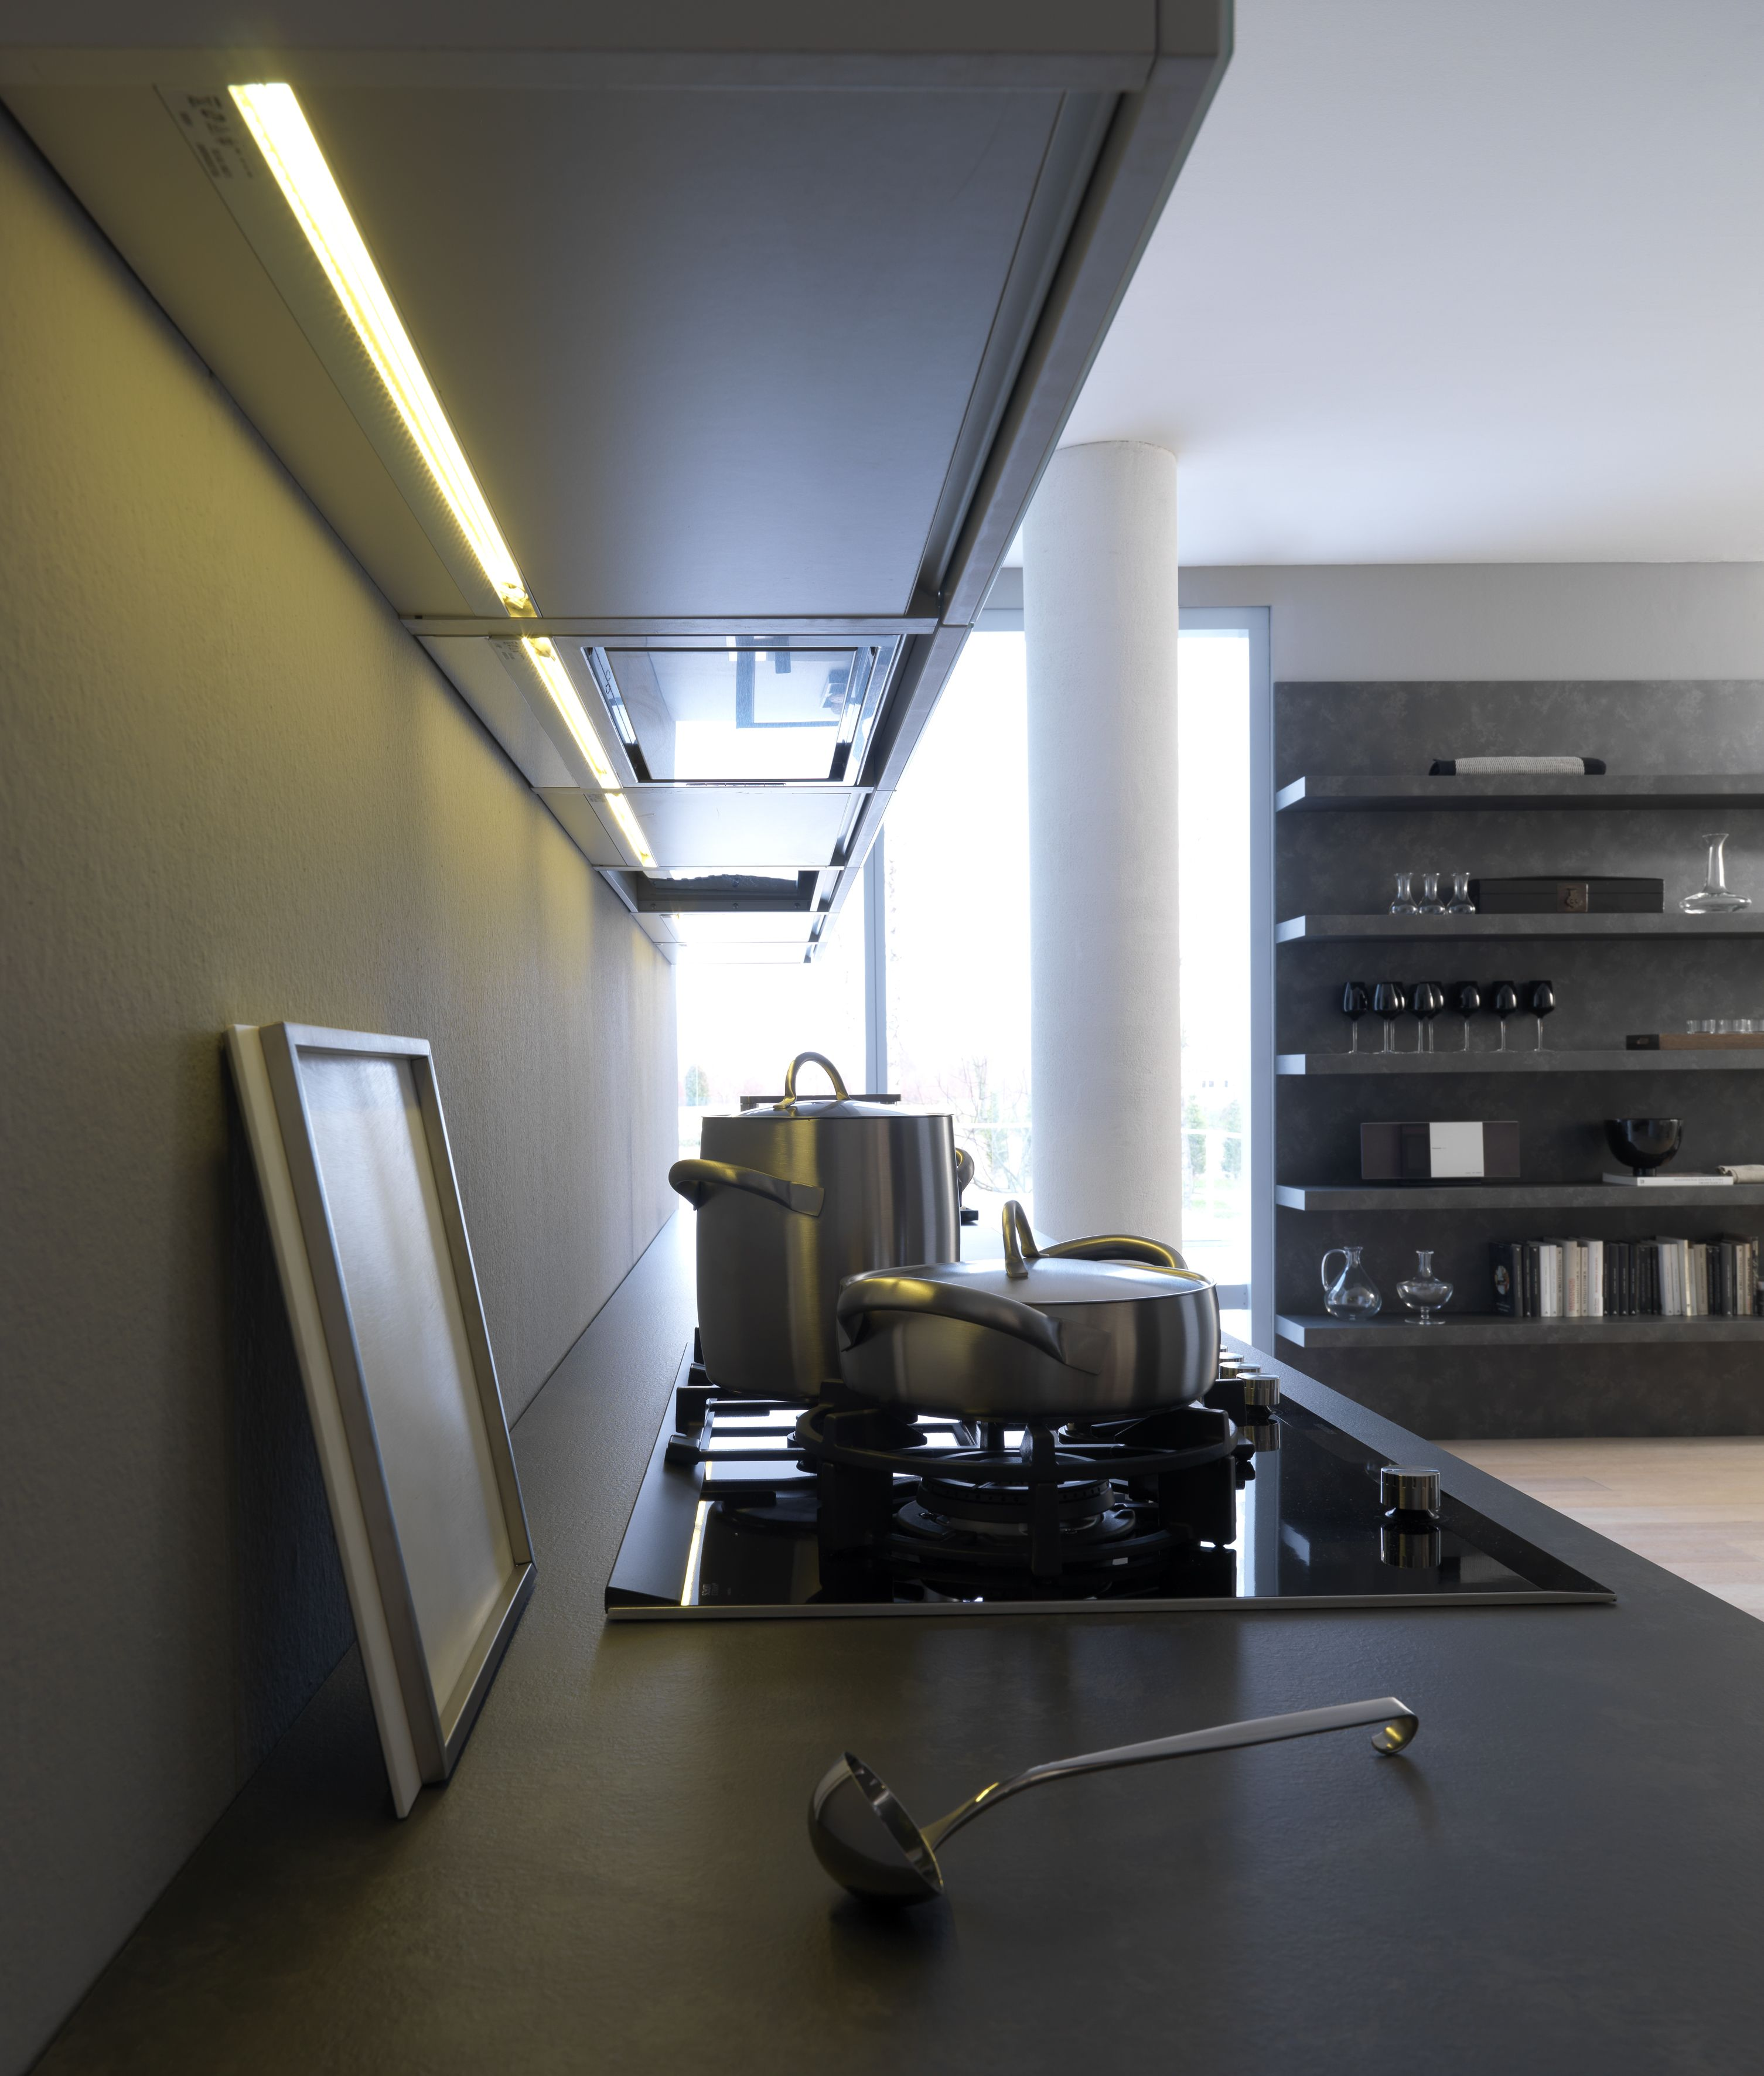 Industrial Light And Magic Render Farm: Modulnova CONCEPT Line Kitchen. Look Up: An Integrated